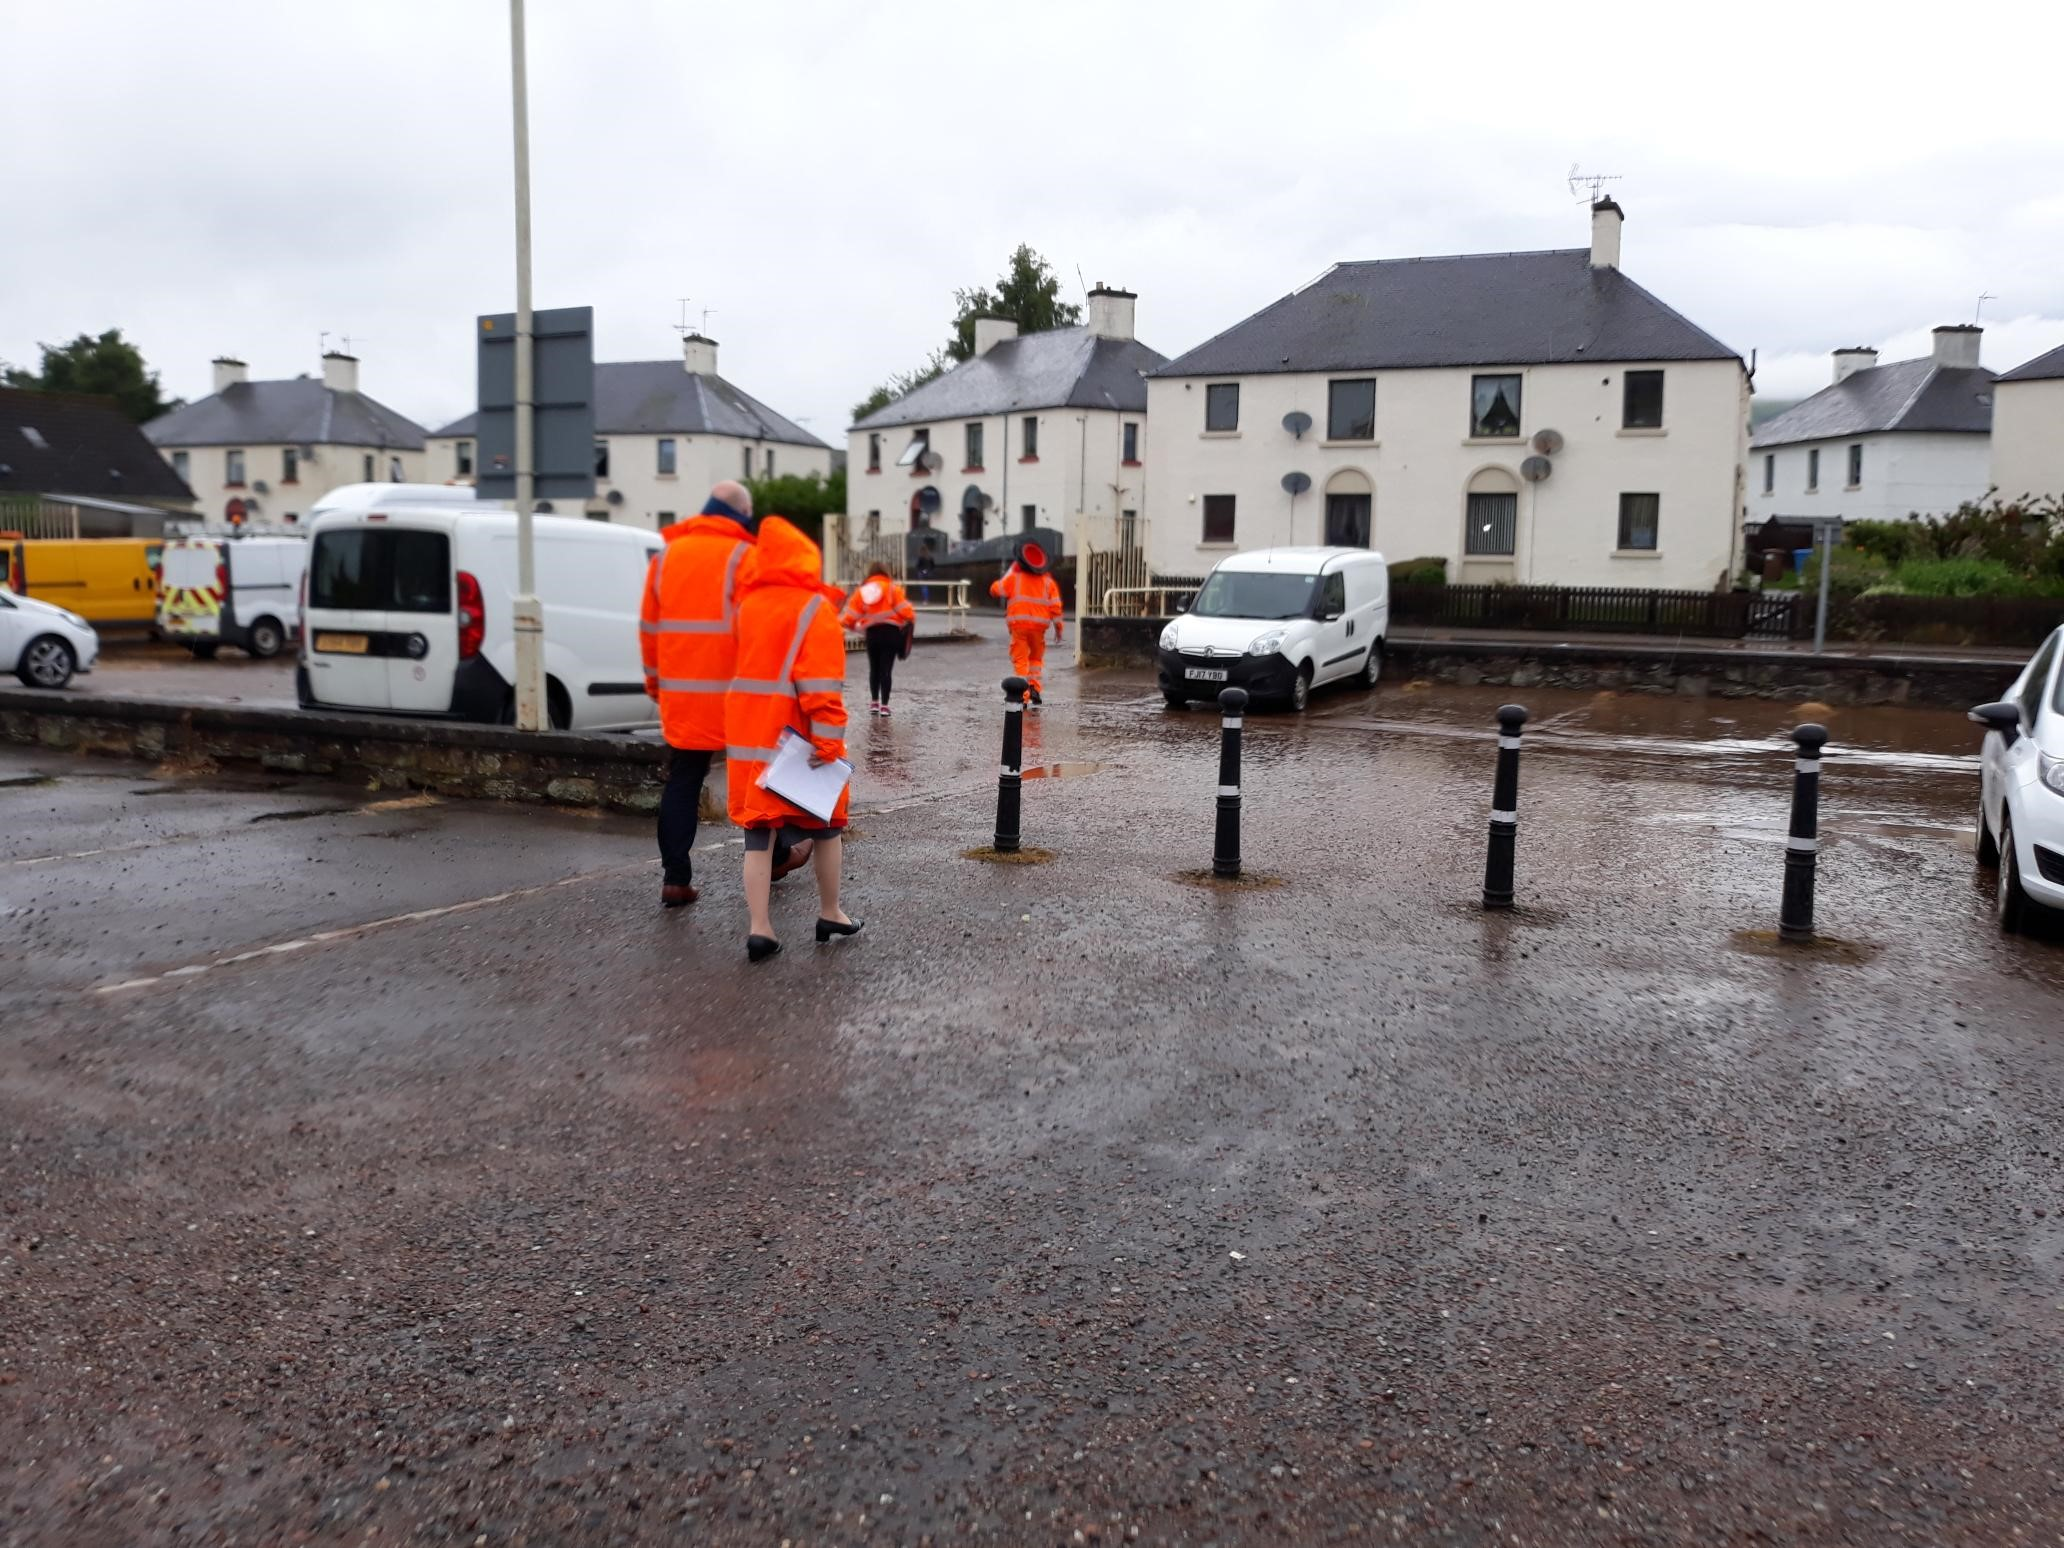 •	Photo by Cllr Angela MacLean who was with Chief Executive Donna Manson and Cllr Alister Mackinnon and Council staff at Dingwall floods